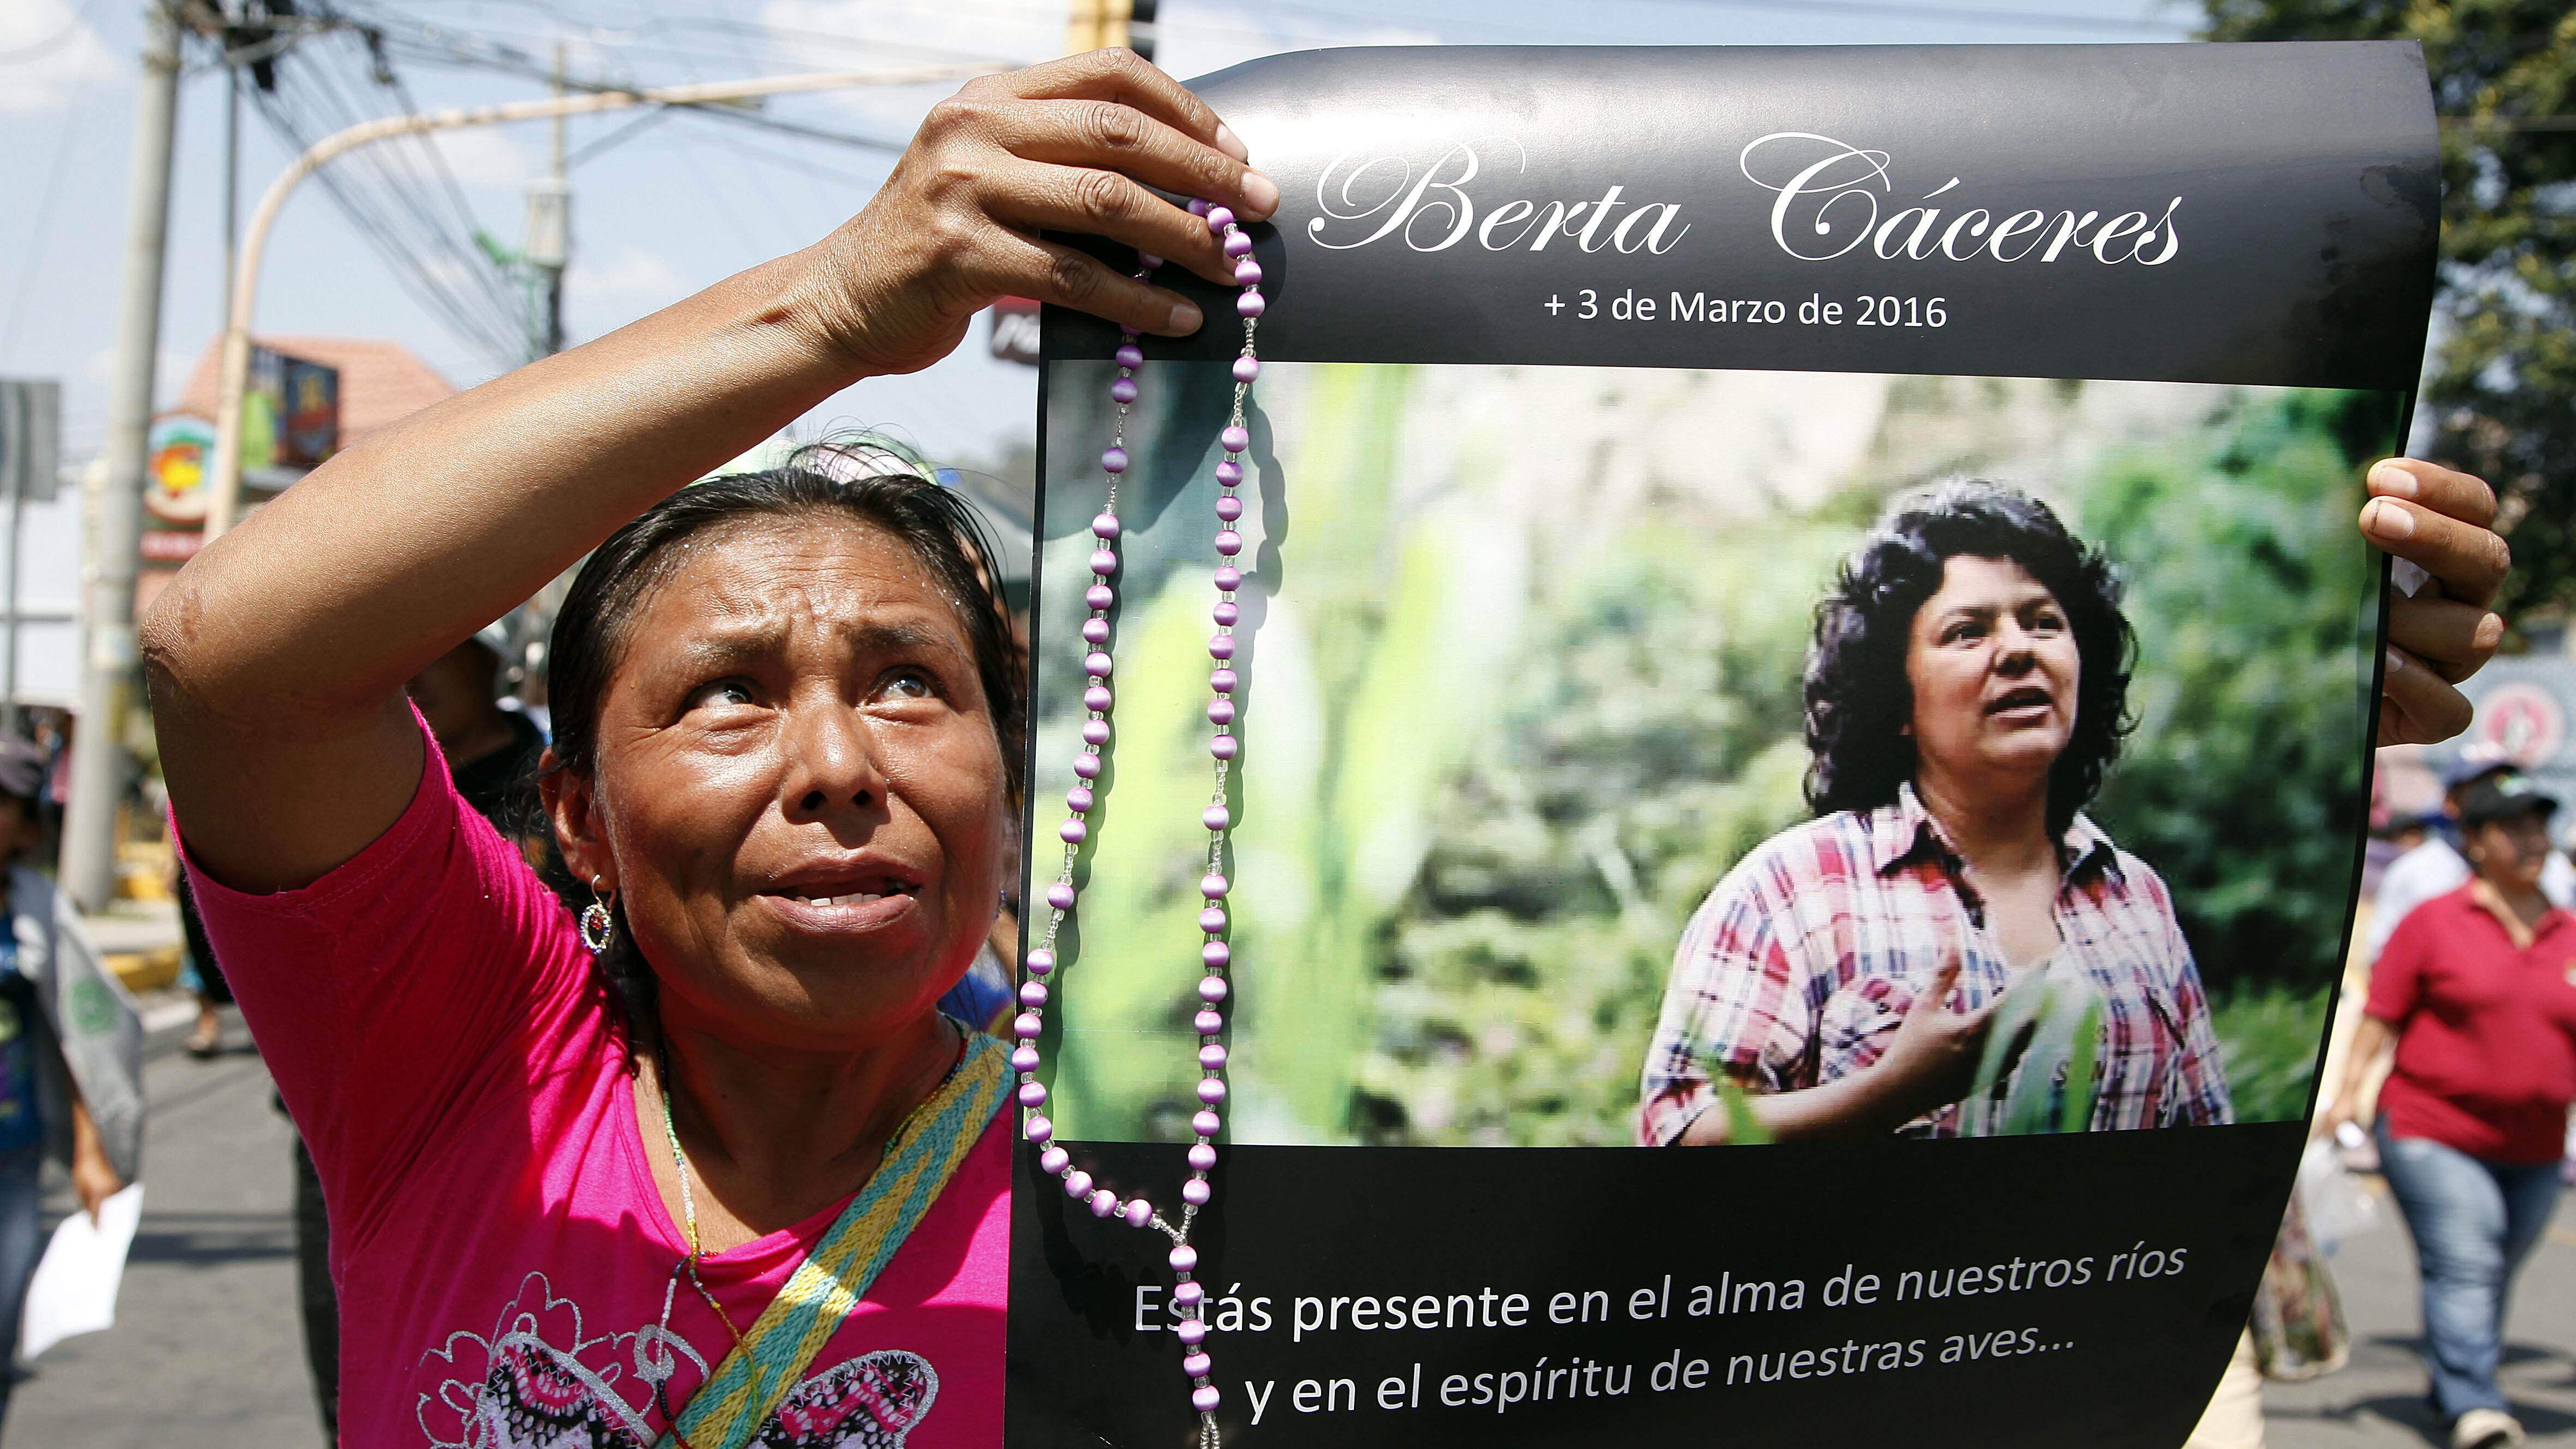 A woman holds up a poster with a photo of slain environmental leader Berta Caceres during a protest in Tegucigalpa, Honduras. Caceres reported receiving threats from DESA security personnel, as well as an attempt by a company official to bribe her to call off the demonstrations, according to Billy Kyte, a senior campaigner on land and environmental defense at London-based Global Witness. DESA, or Desarrollos Energeticos SA, is the company carrying out the Agua Zarca hydroelectric project that Caceres lead protests against.